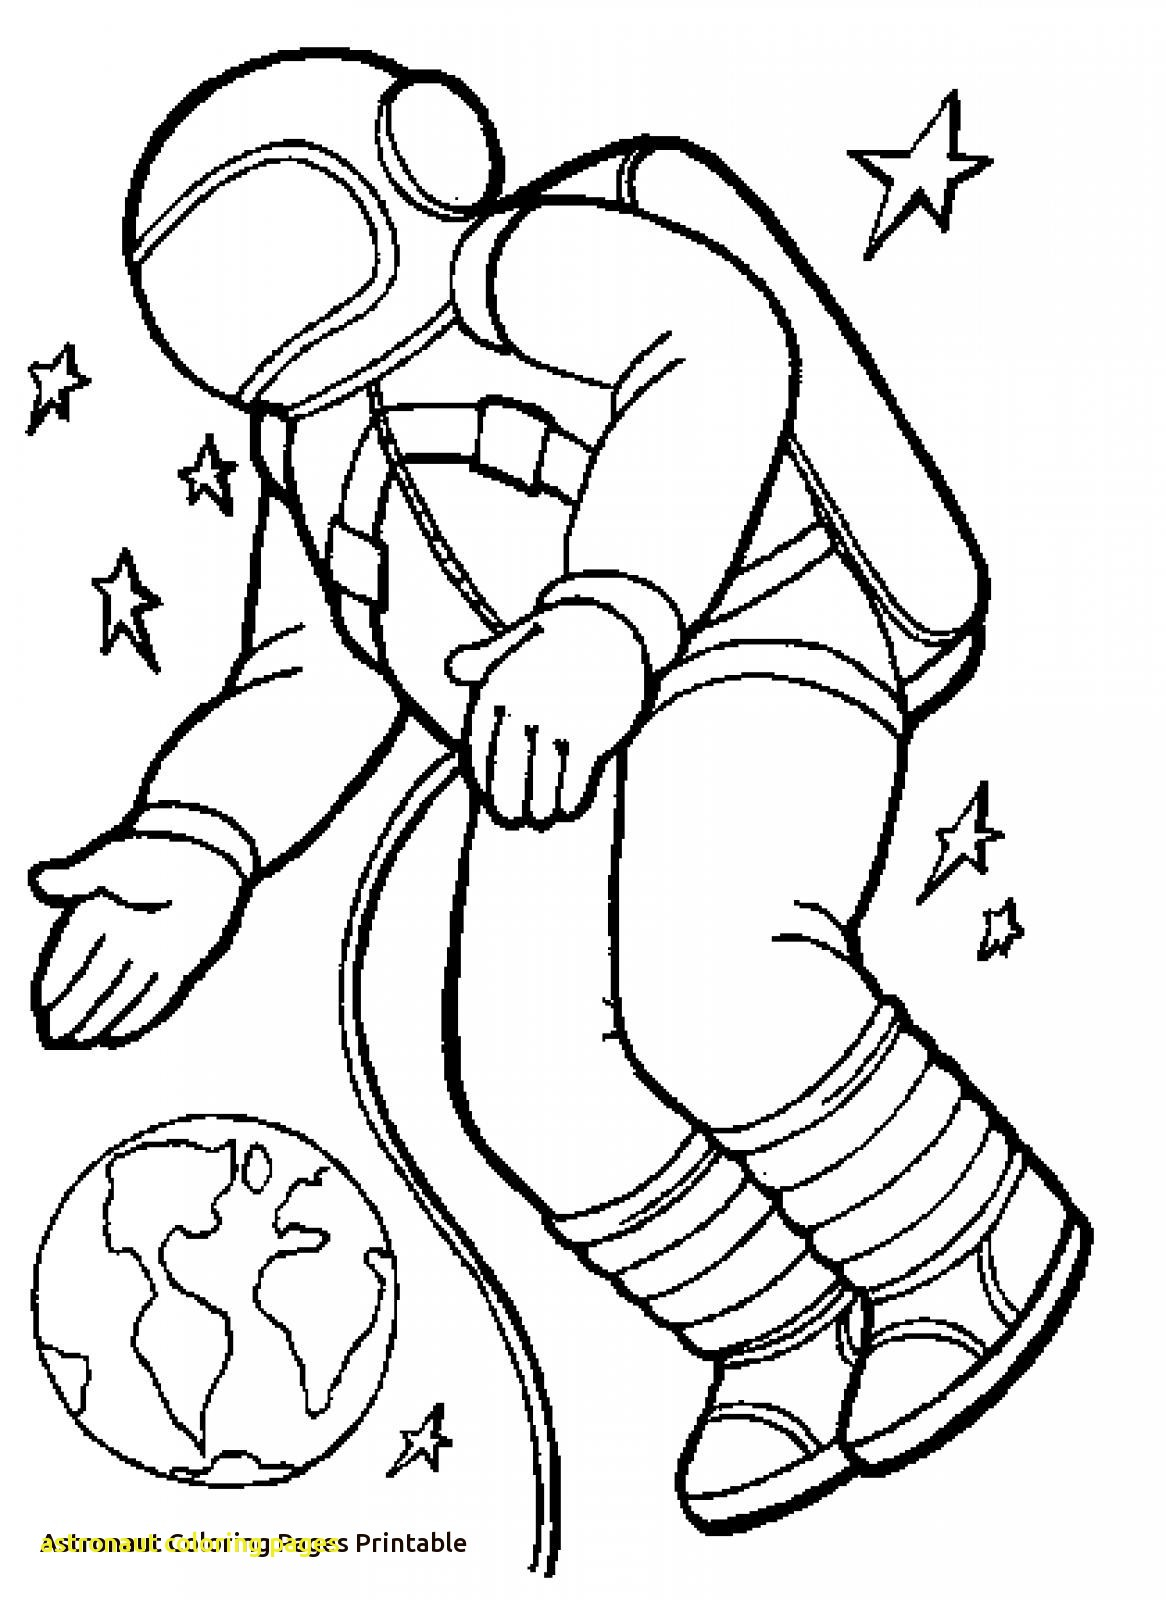 astronaut body coloring page astronaut line drawing at getdrawings free download body astronaut coloring page 1 1